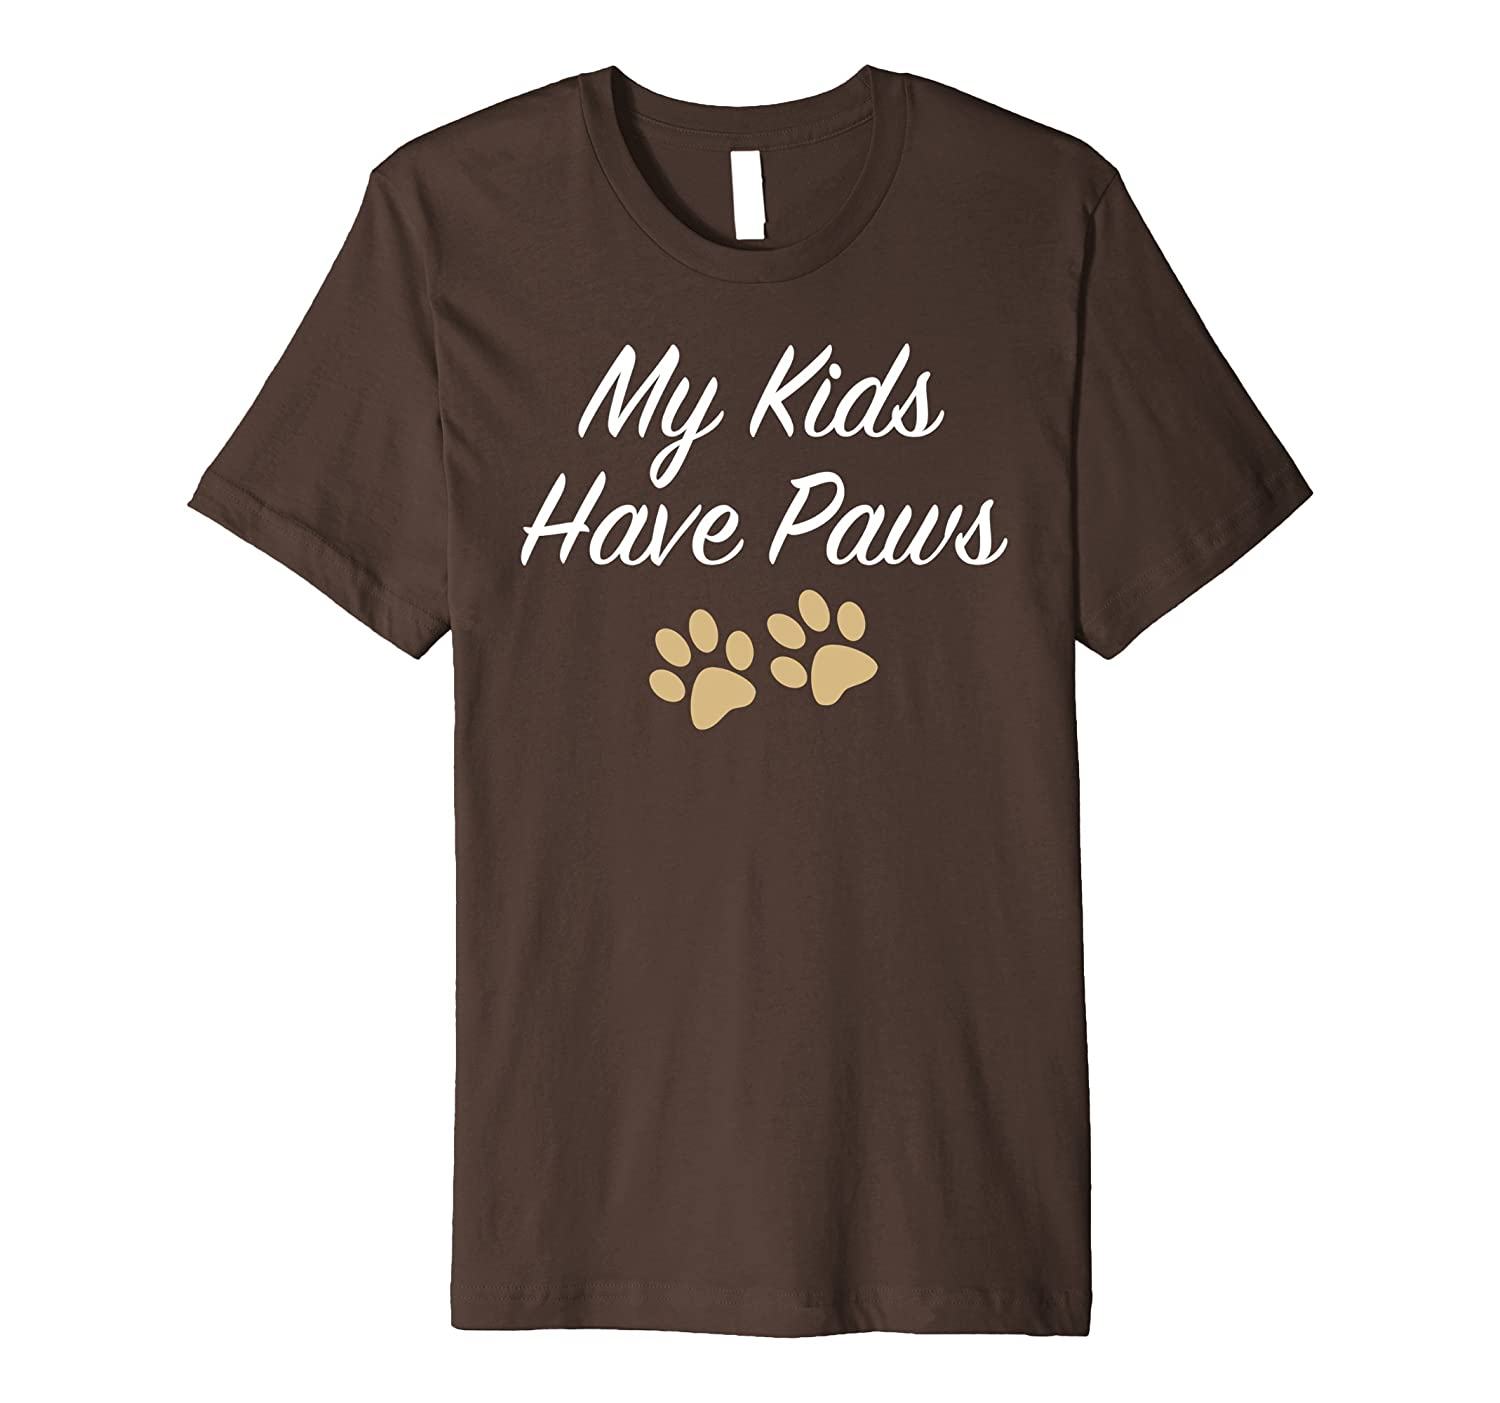 My Kids Have Paws T-shirt - Cute Dog Paw - Tee, Shirt, Gift-AZP